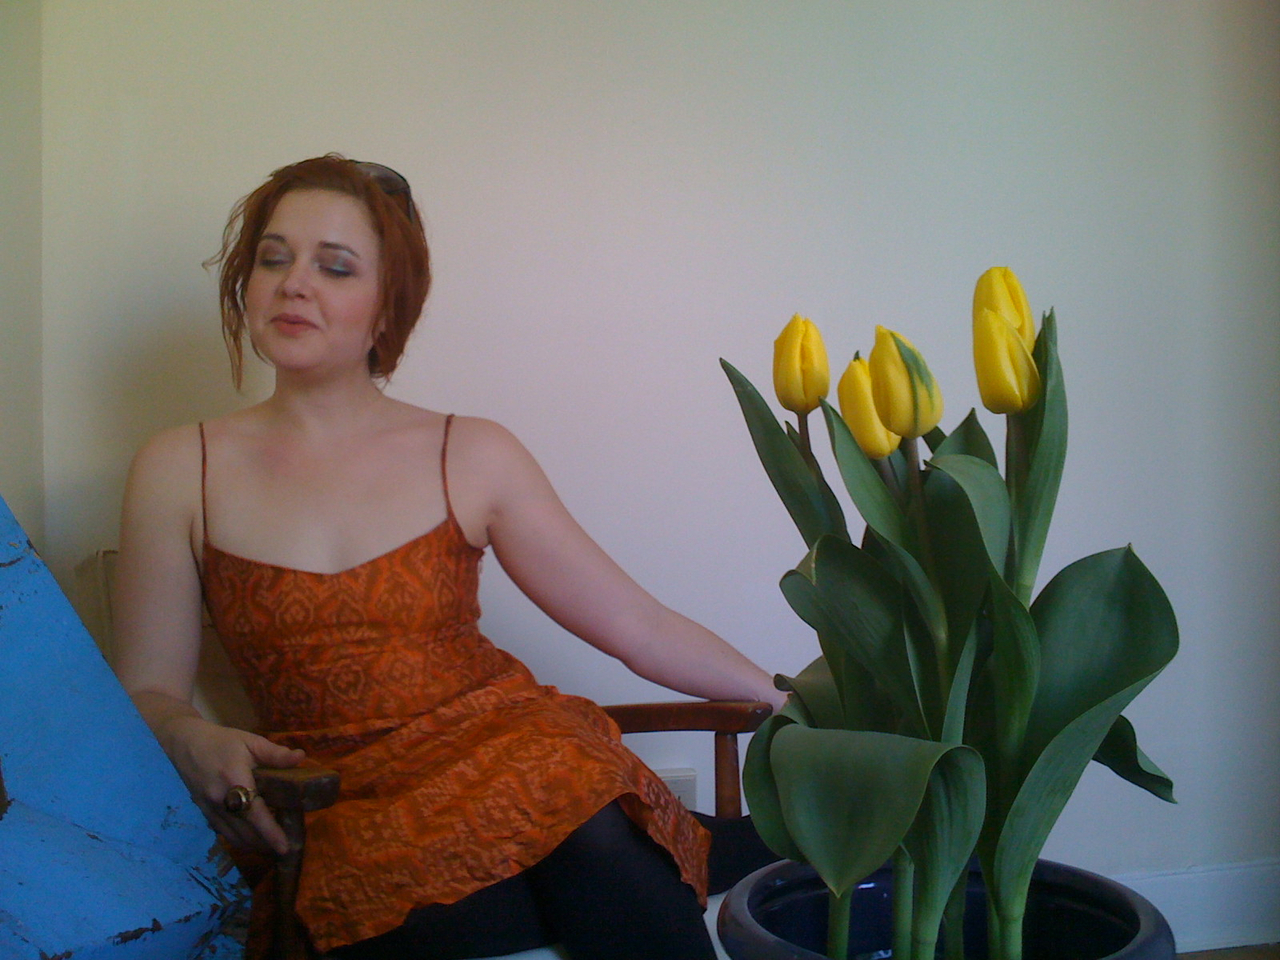 Lovely Marissa brought some tulips to brighten up my new diggs.